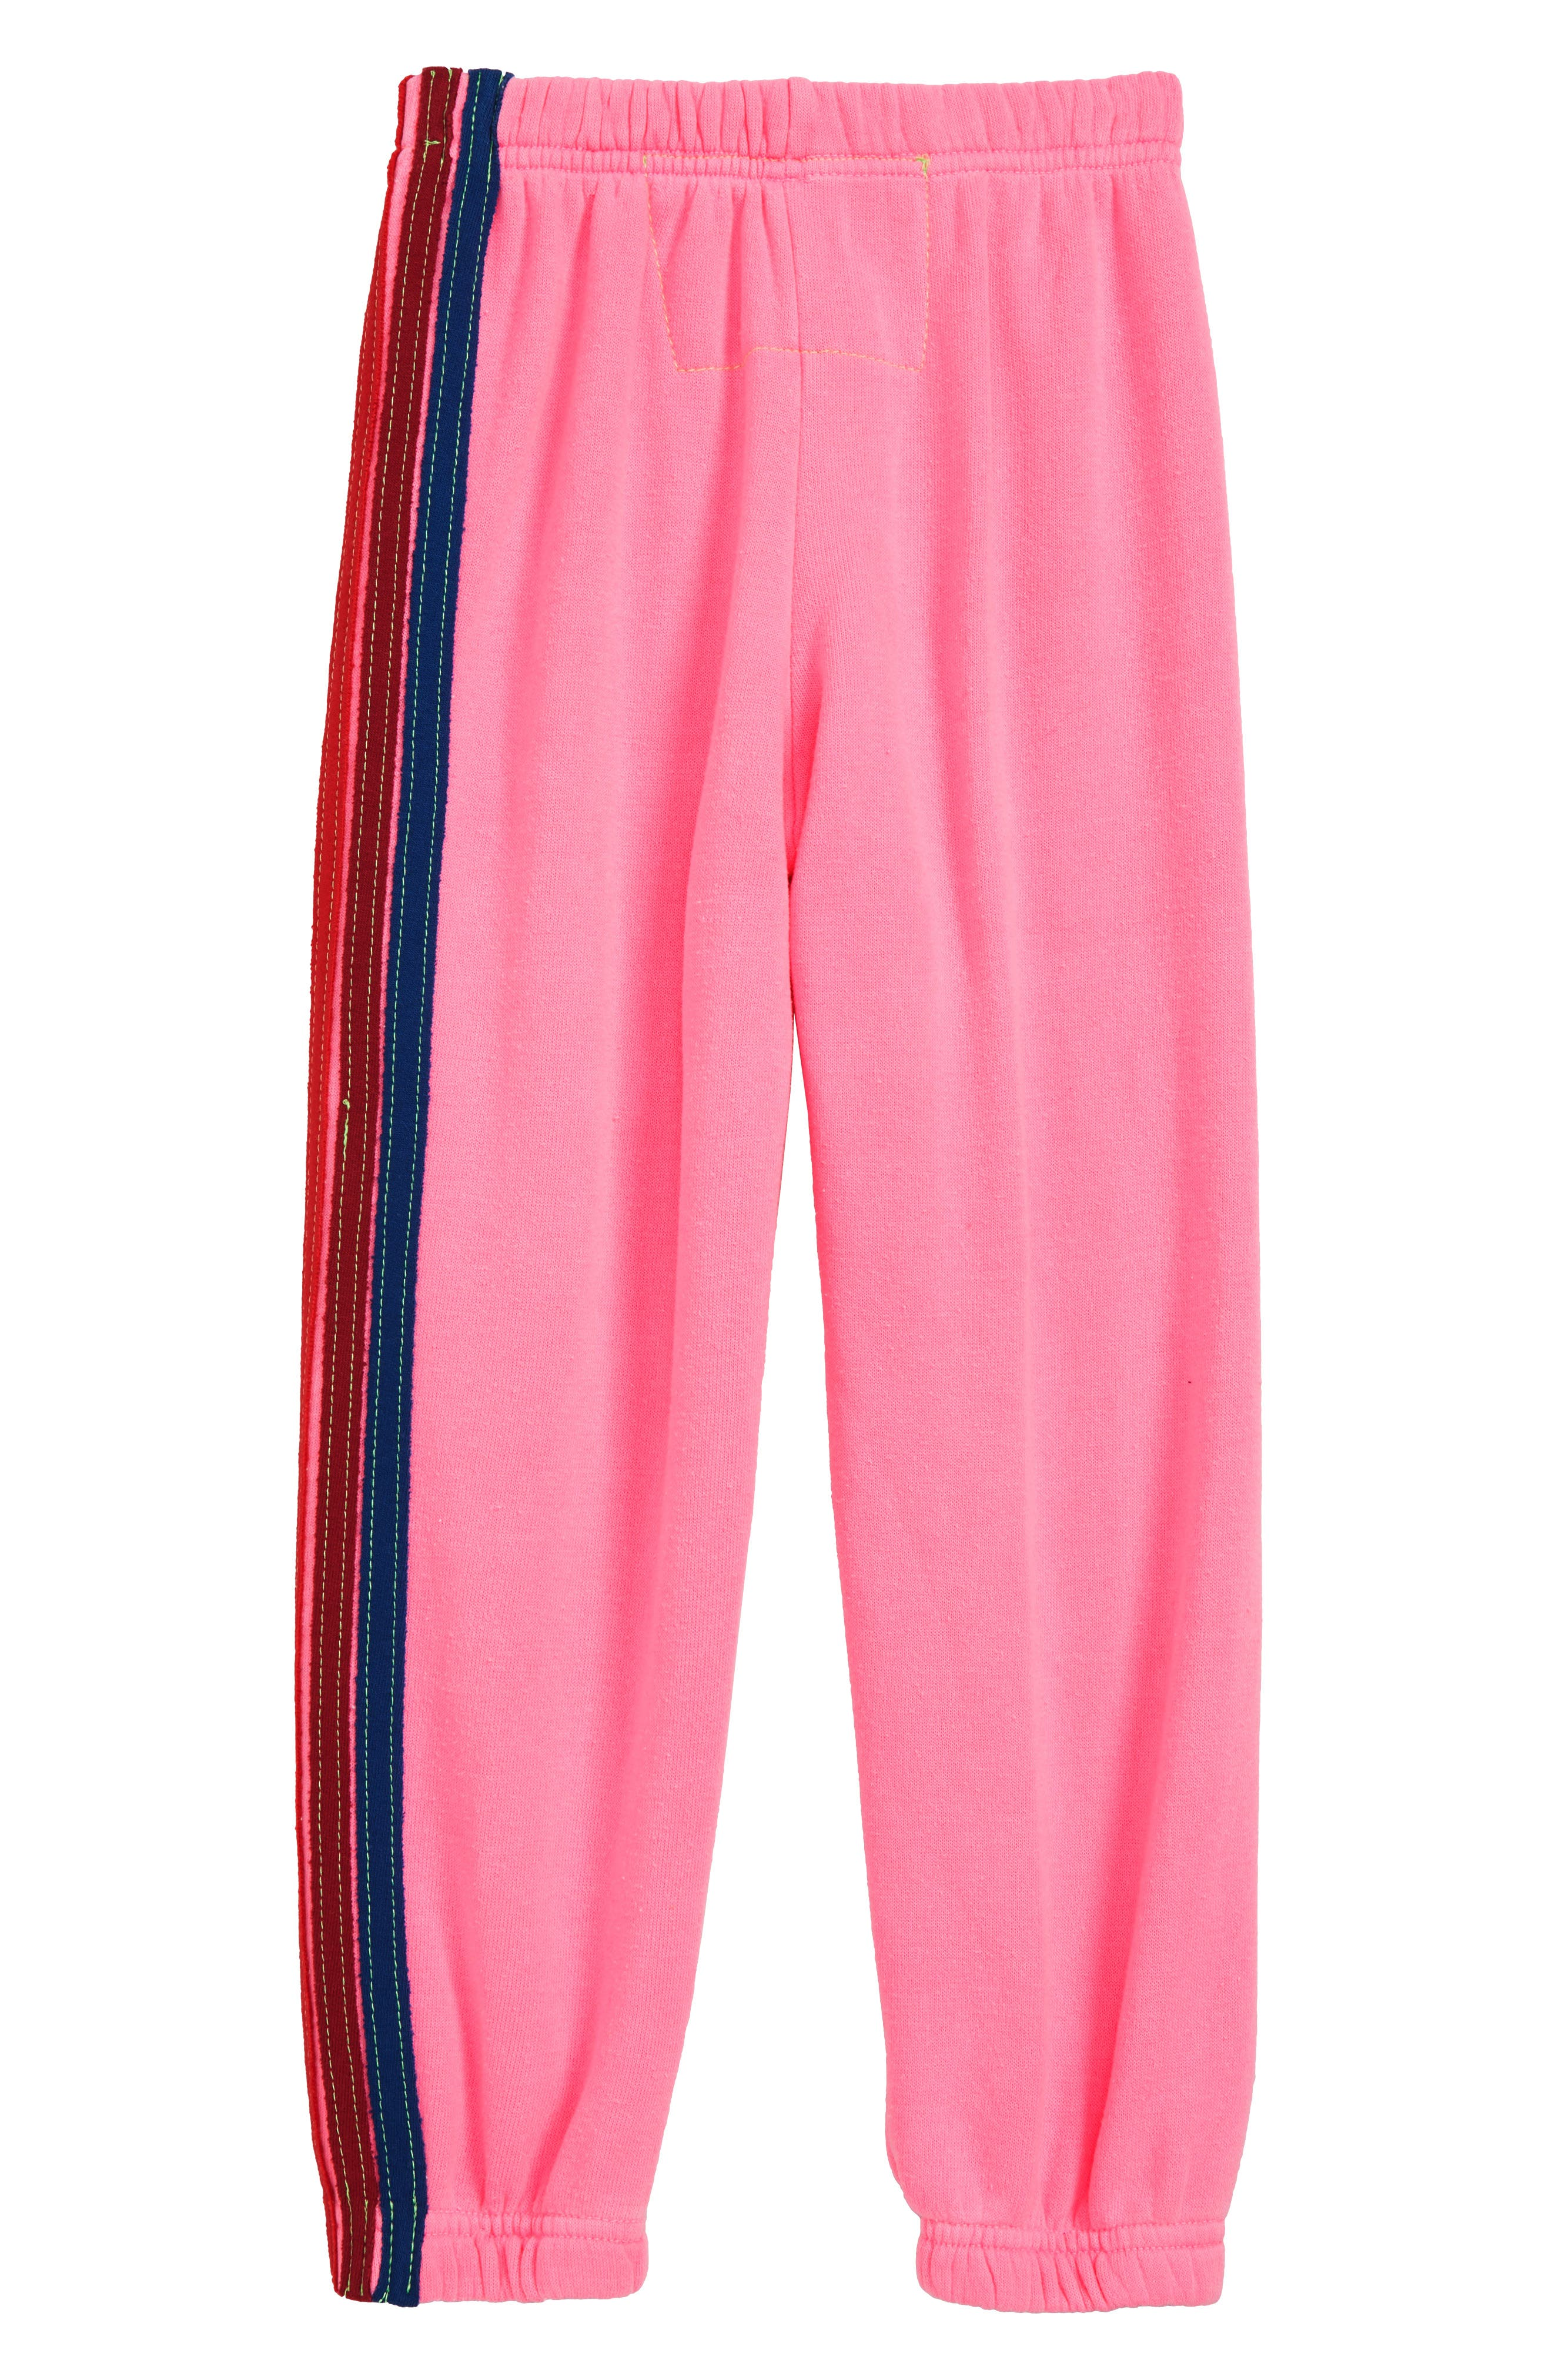 5-Stripe Sweatpants,                             Alternate thumbnail 2, color,                             NEON PINK